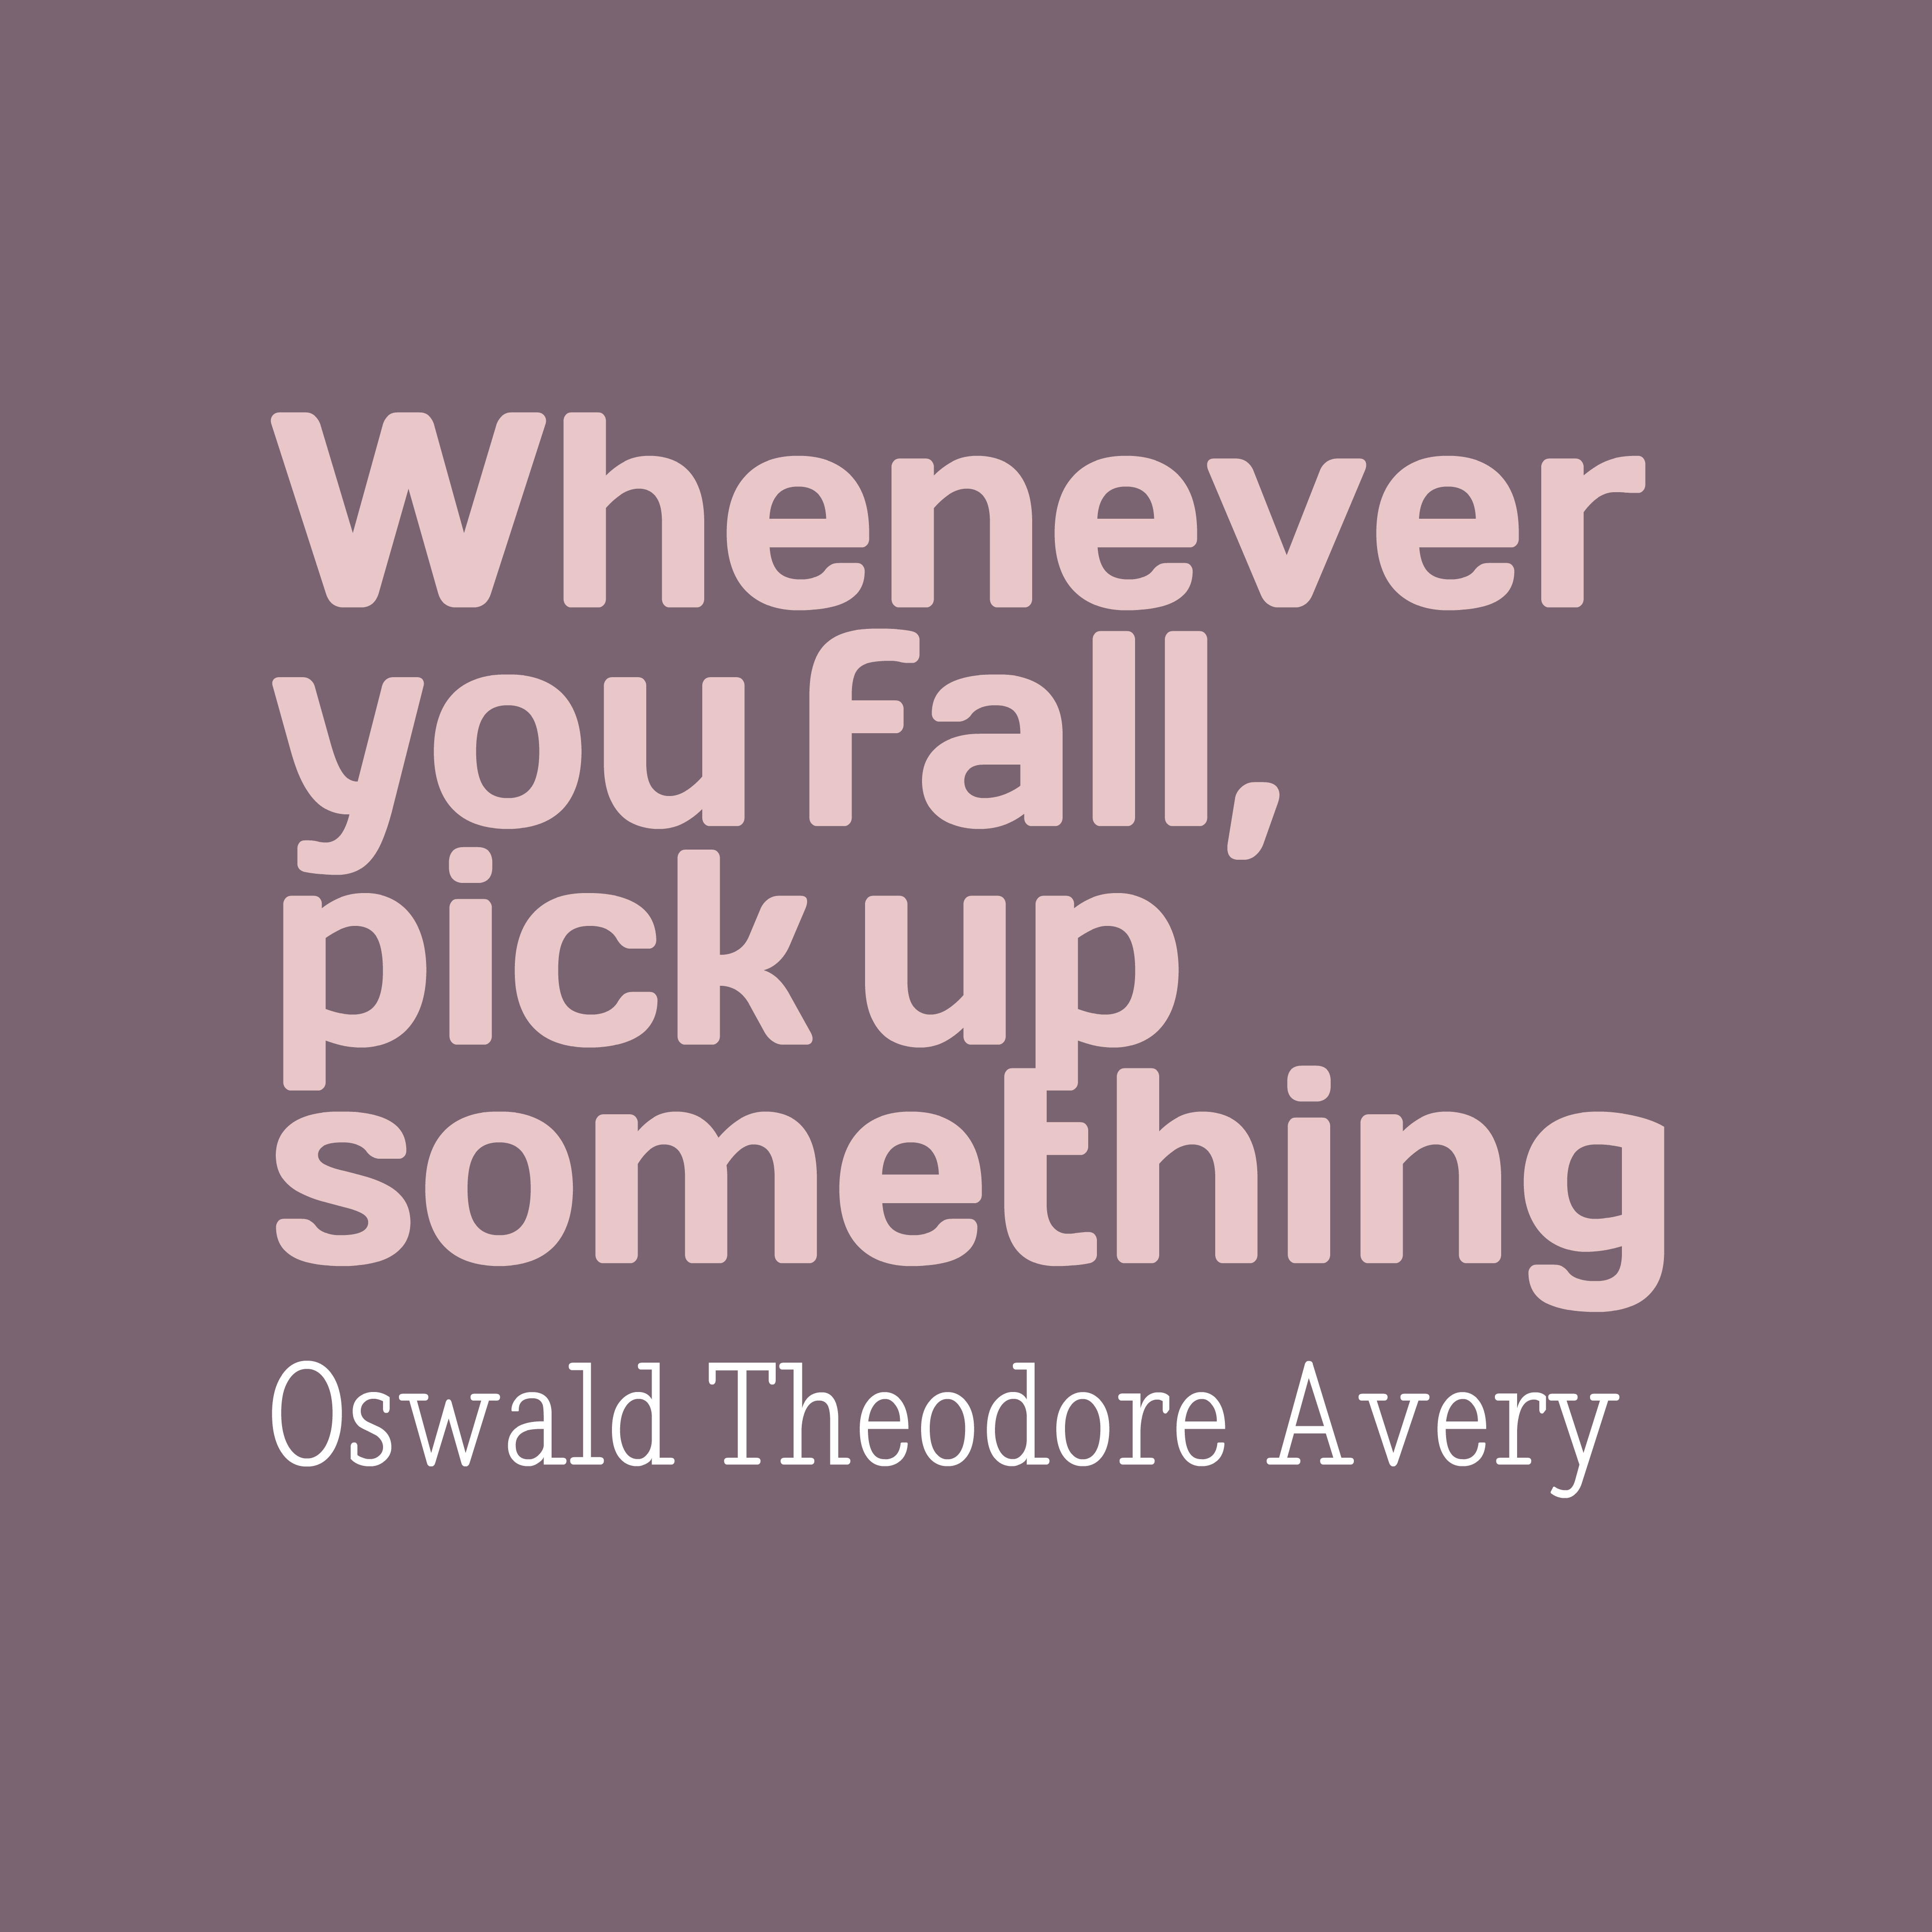 Quotes image of Whenever you fall, pick up something